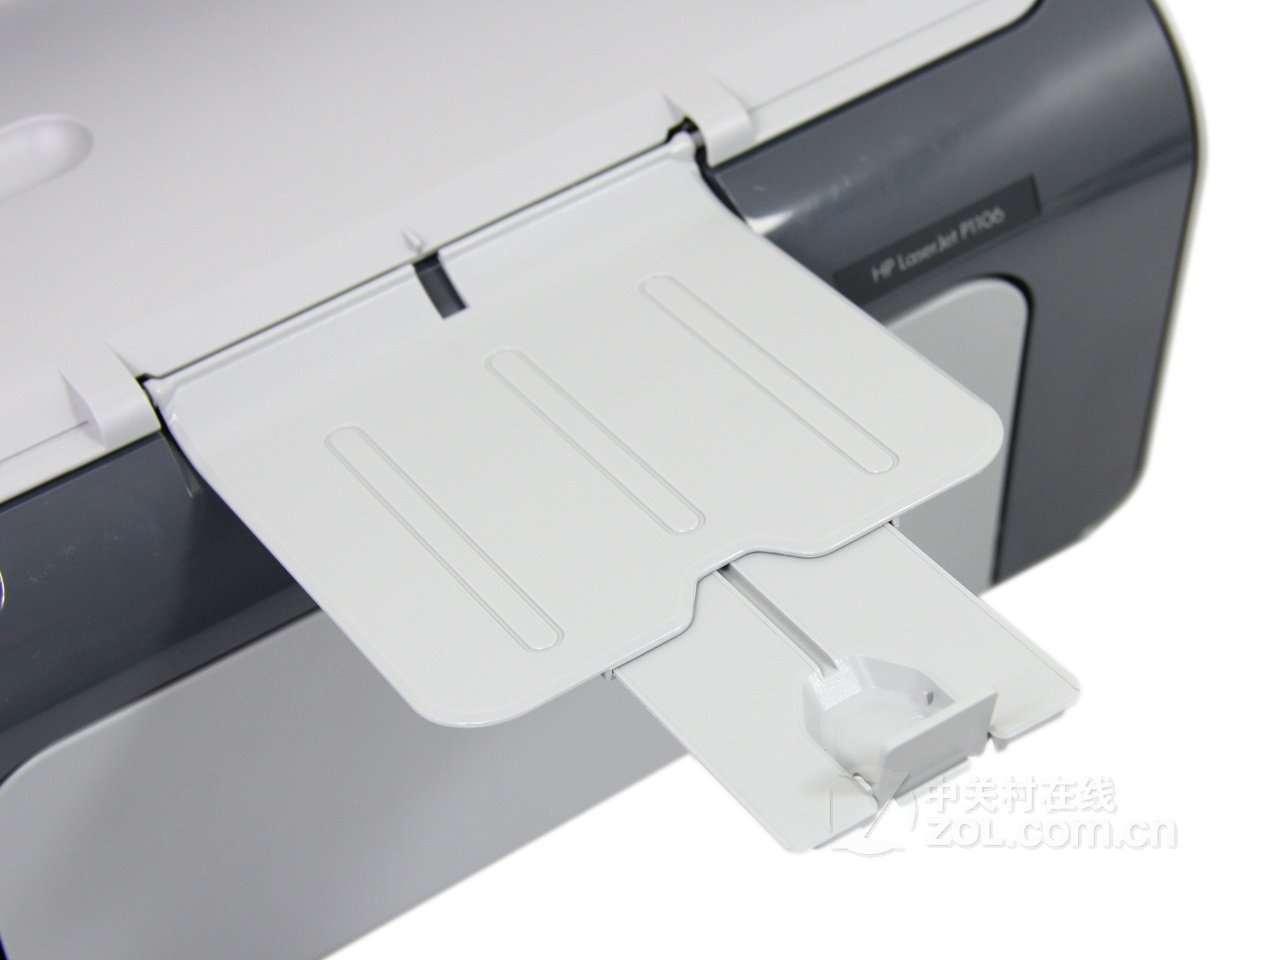 Output Paper Delivery Tray Assy for HP P1102 P1102w P1007 P1008 P1102 P1106 P1108 Replacement Parts(Milky White) Vivi Audio